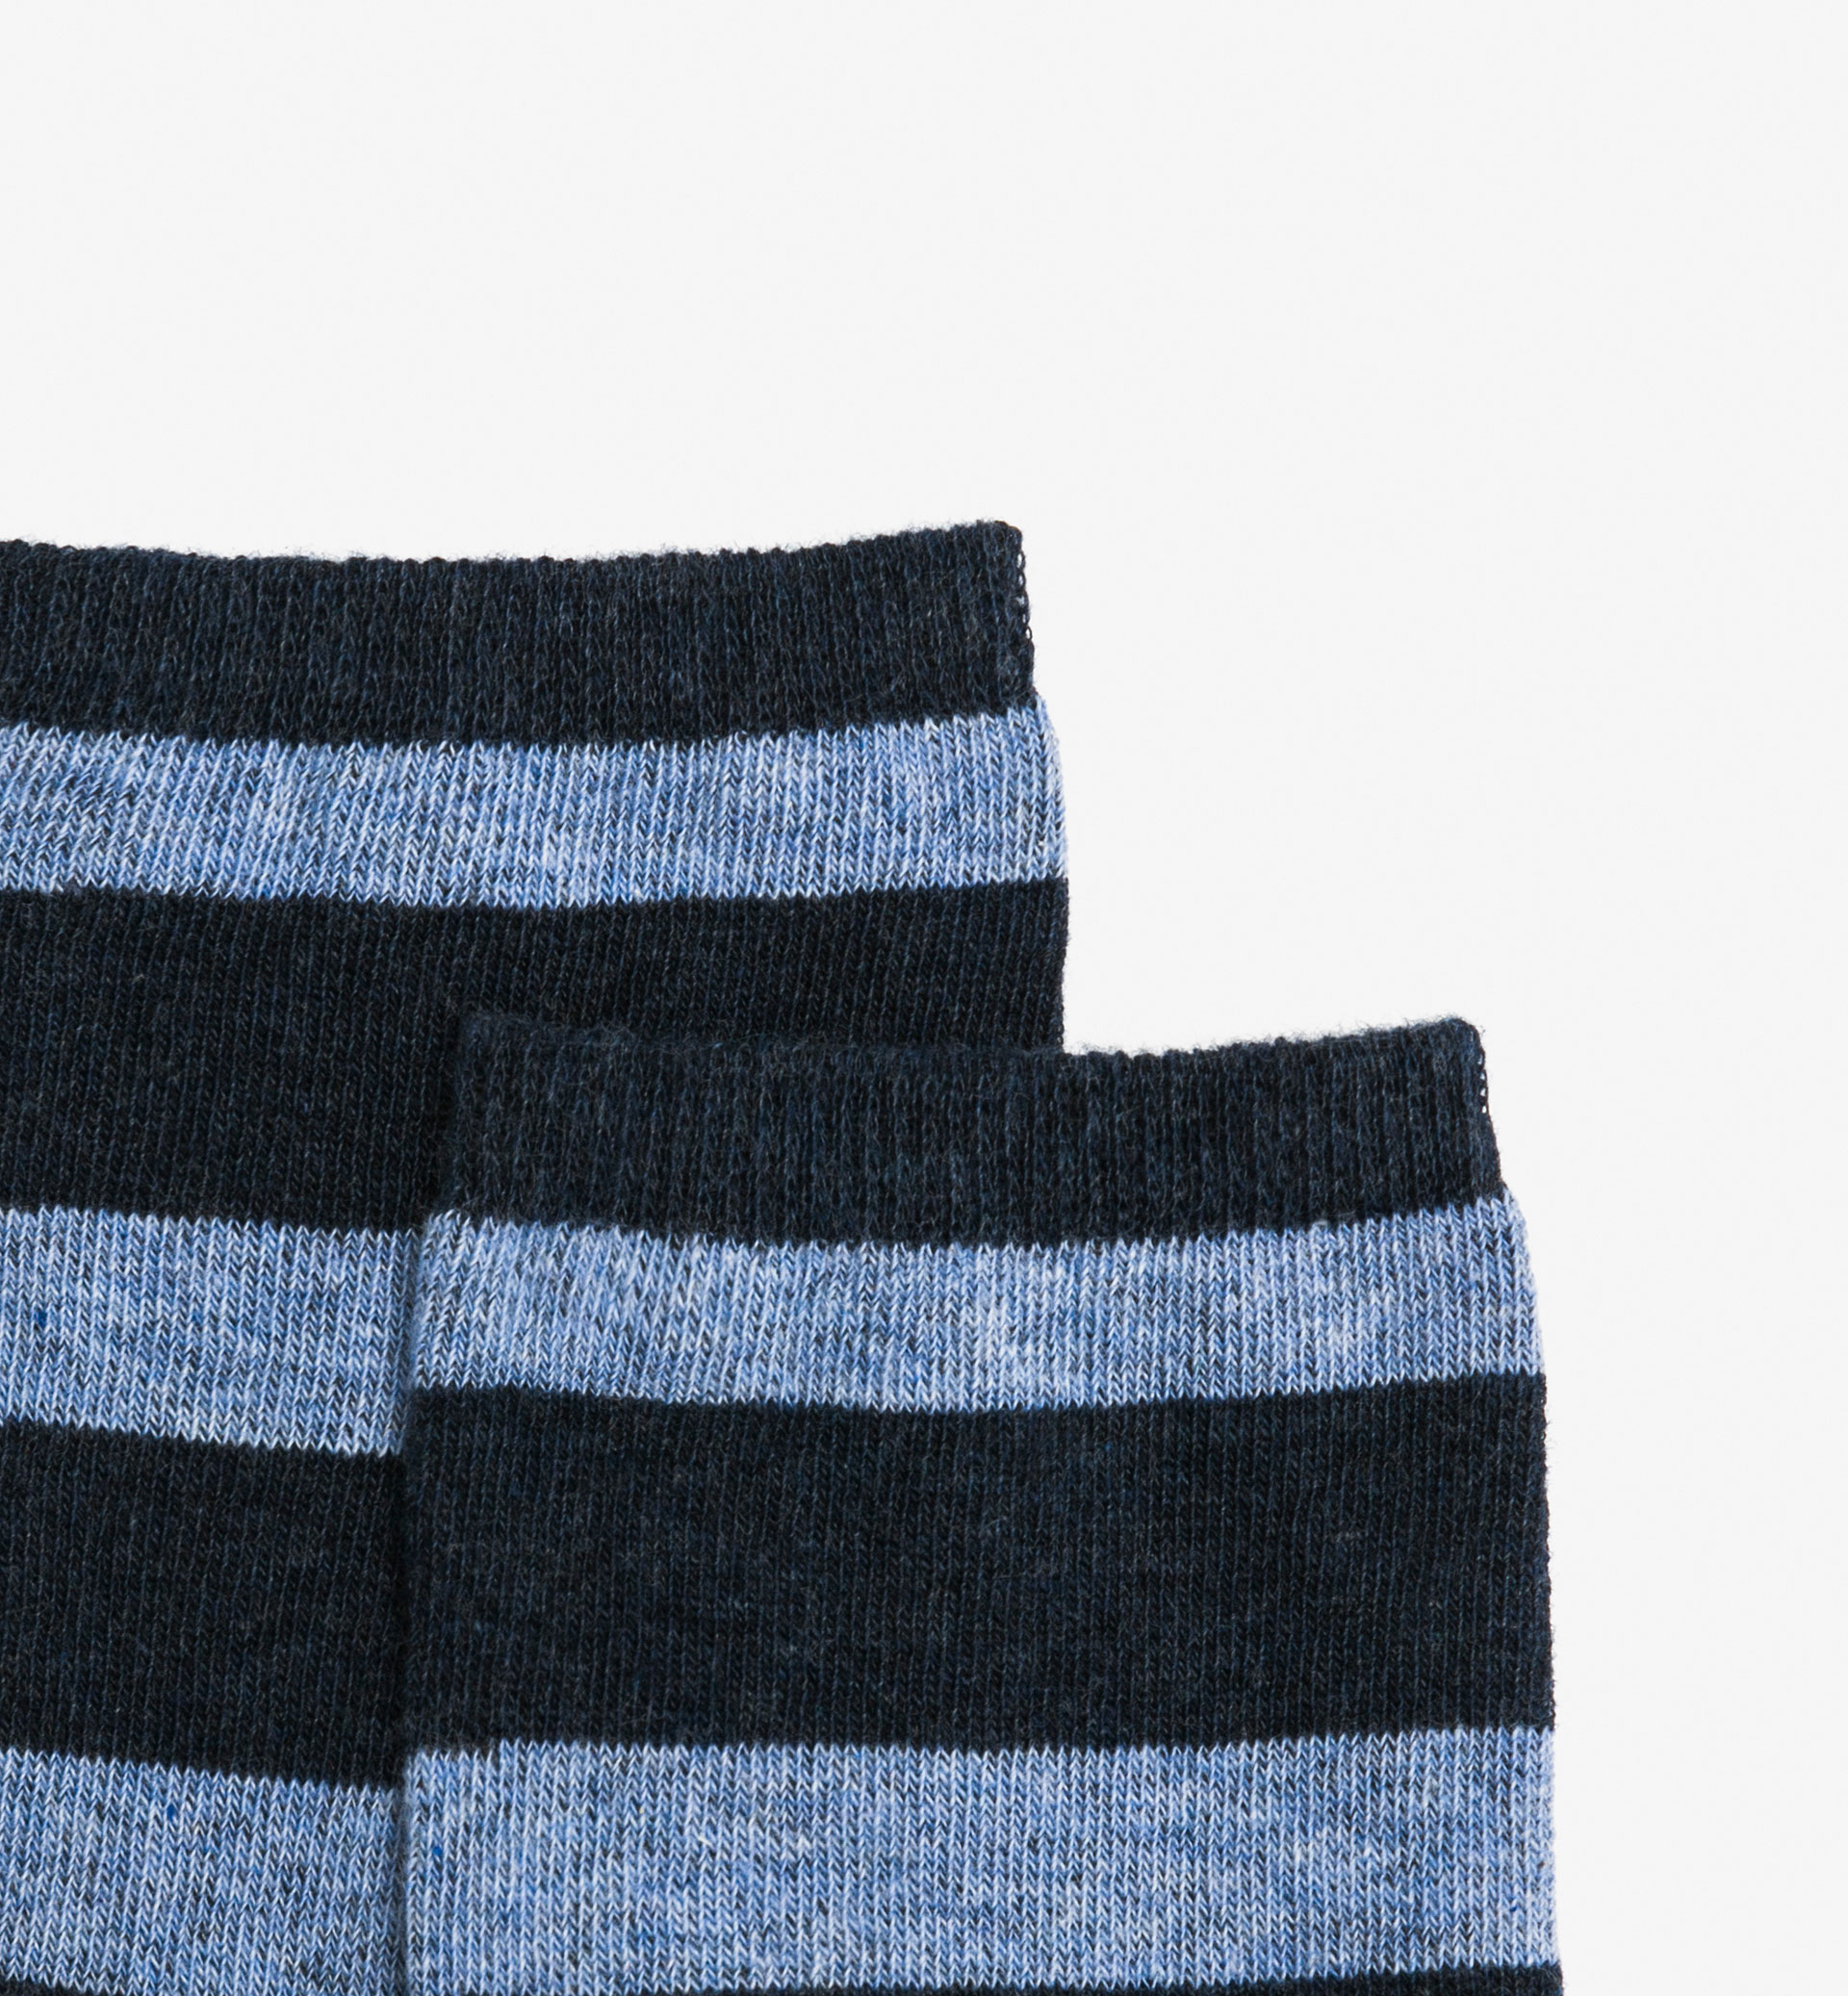 PACK OF BLUE SOCKS